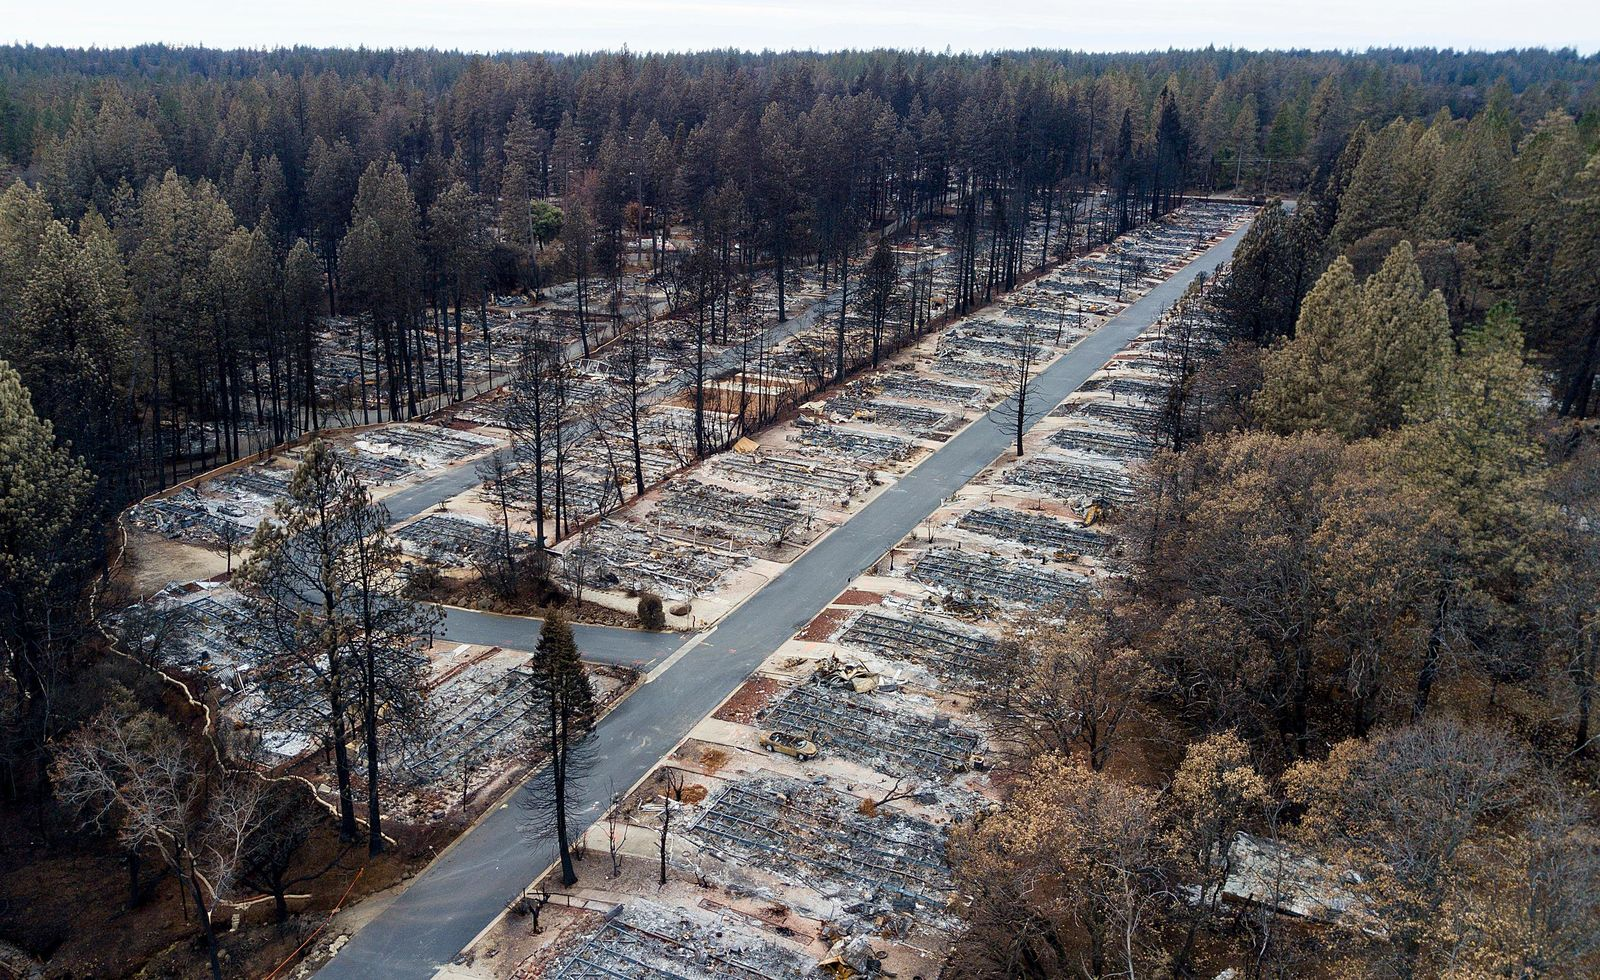 Homes leveled by the Camp Fire line the Ridgewood Mobile Home Park retirement community in Paradise, Calif., on Monday, Dec. 3, 2018. (AP Photo/Noah Berger)